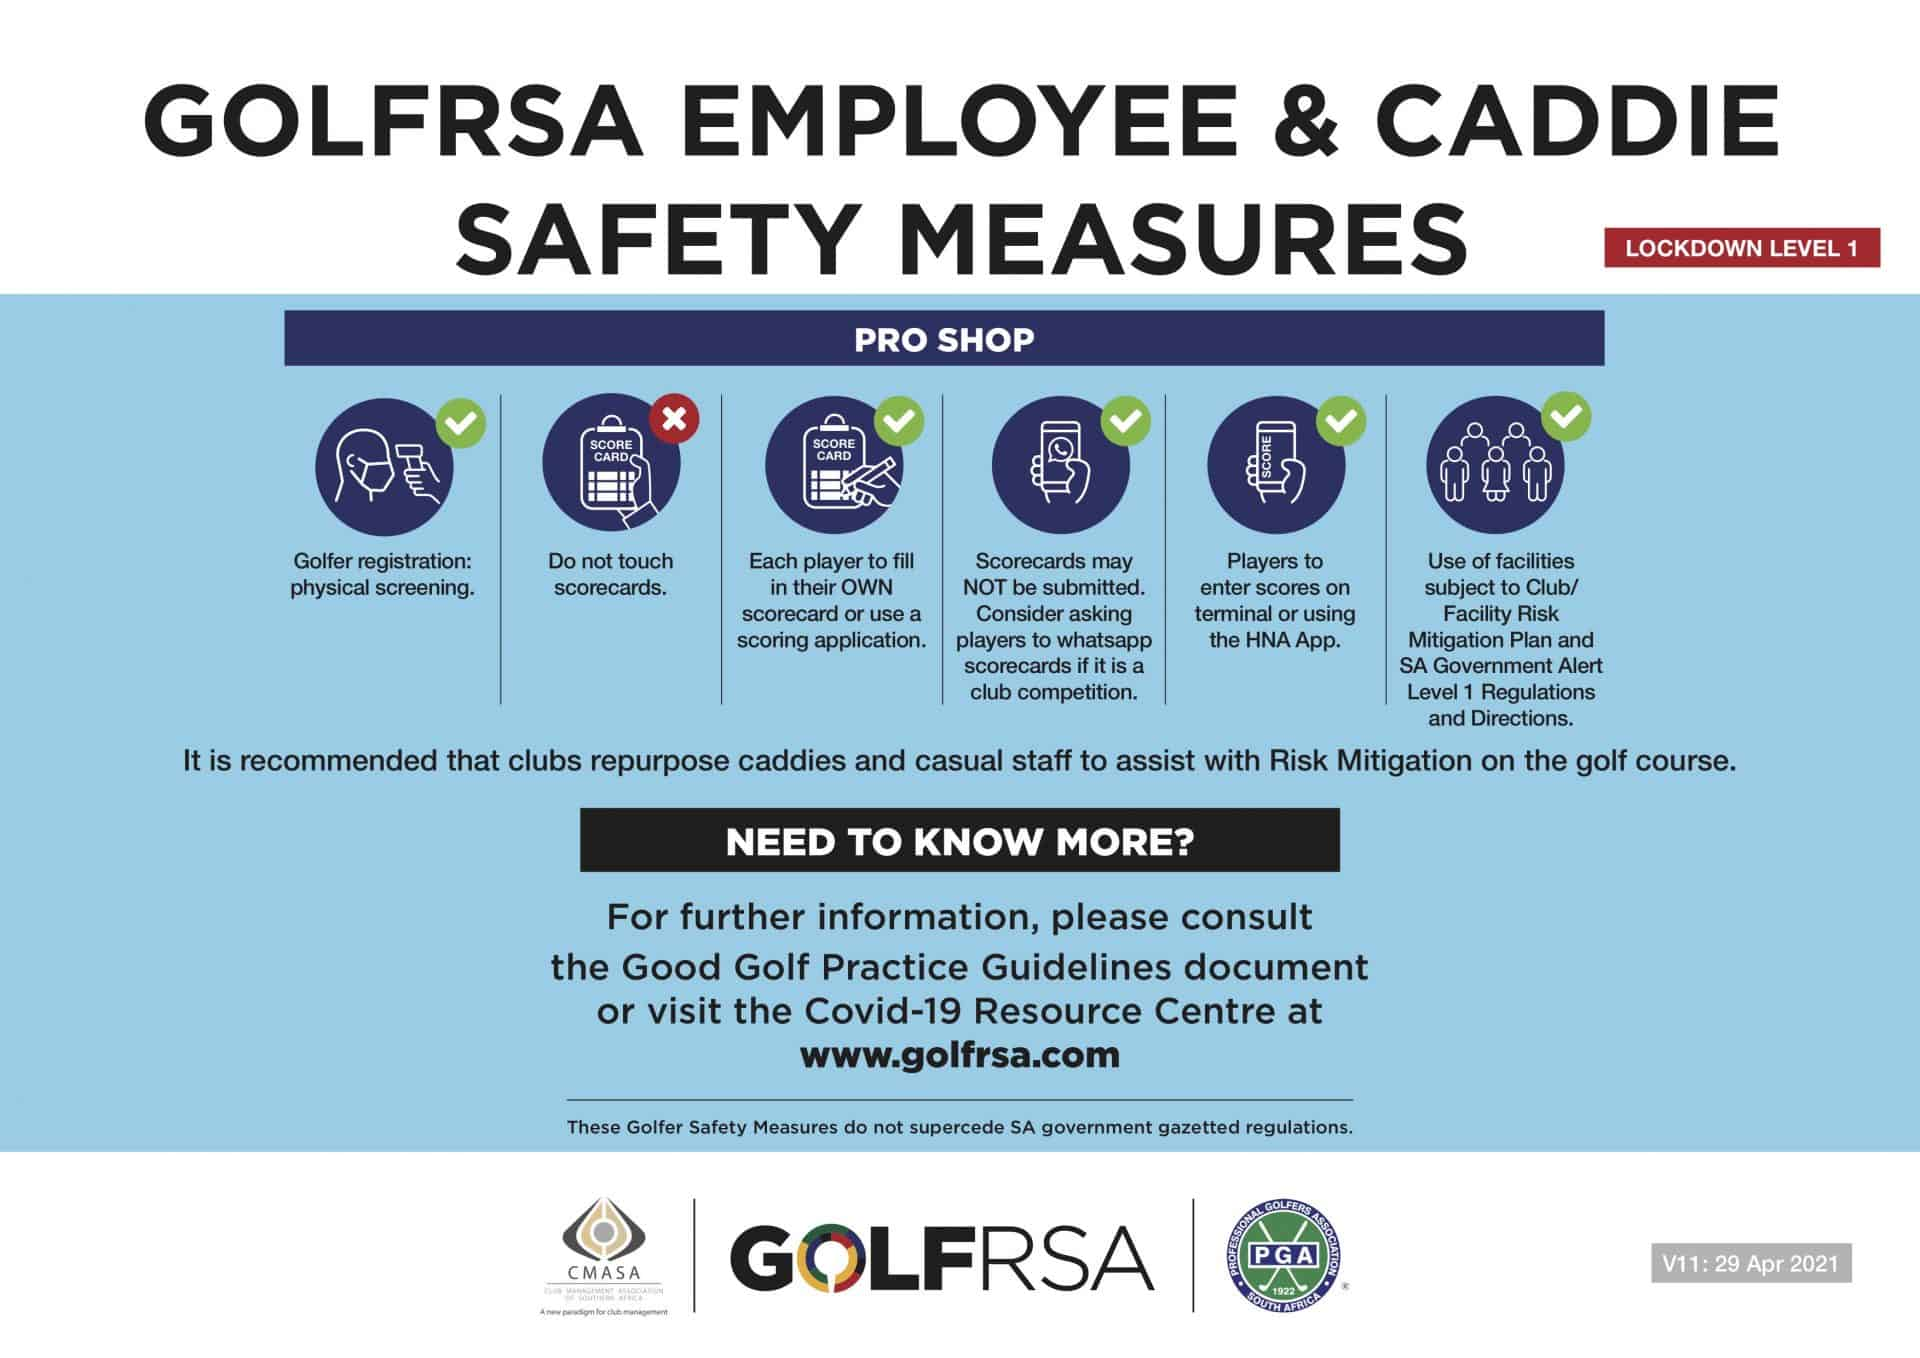 ENG GolfRSA caddie and employee safety measures V11 - 2